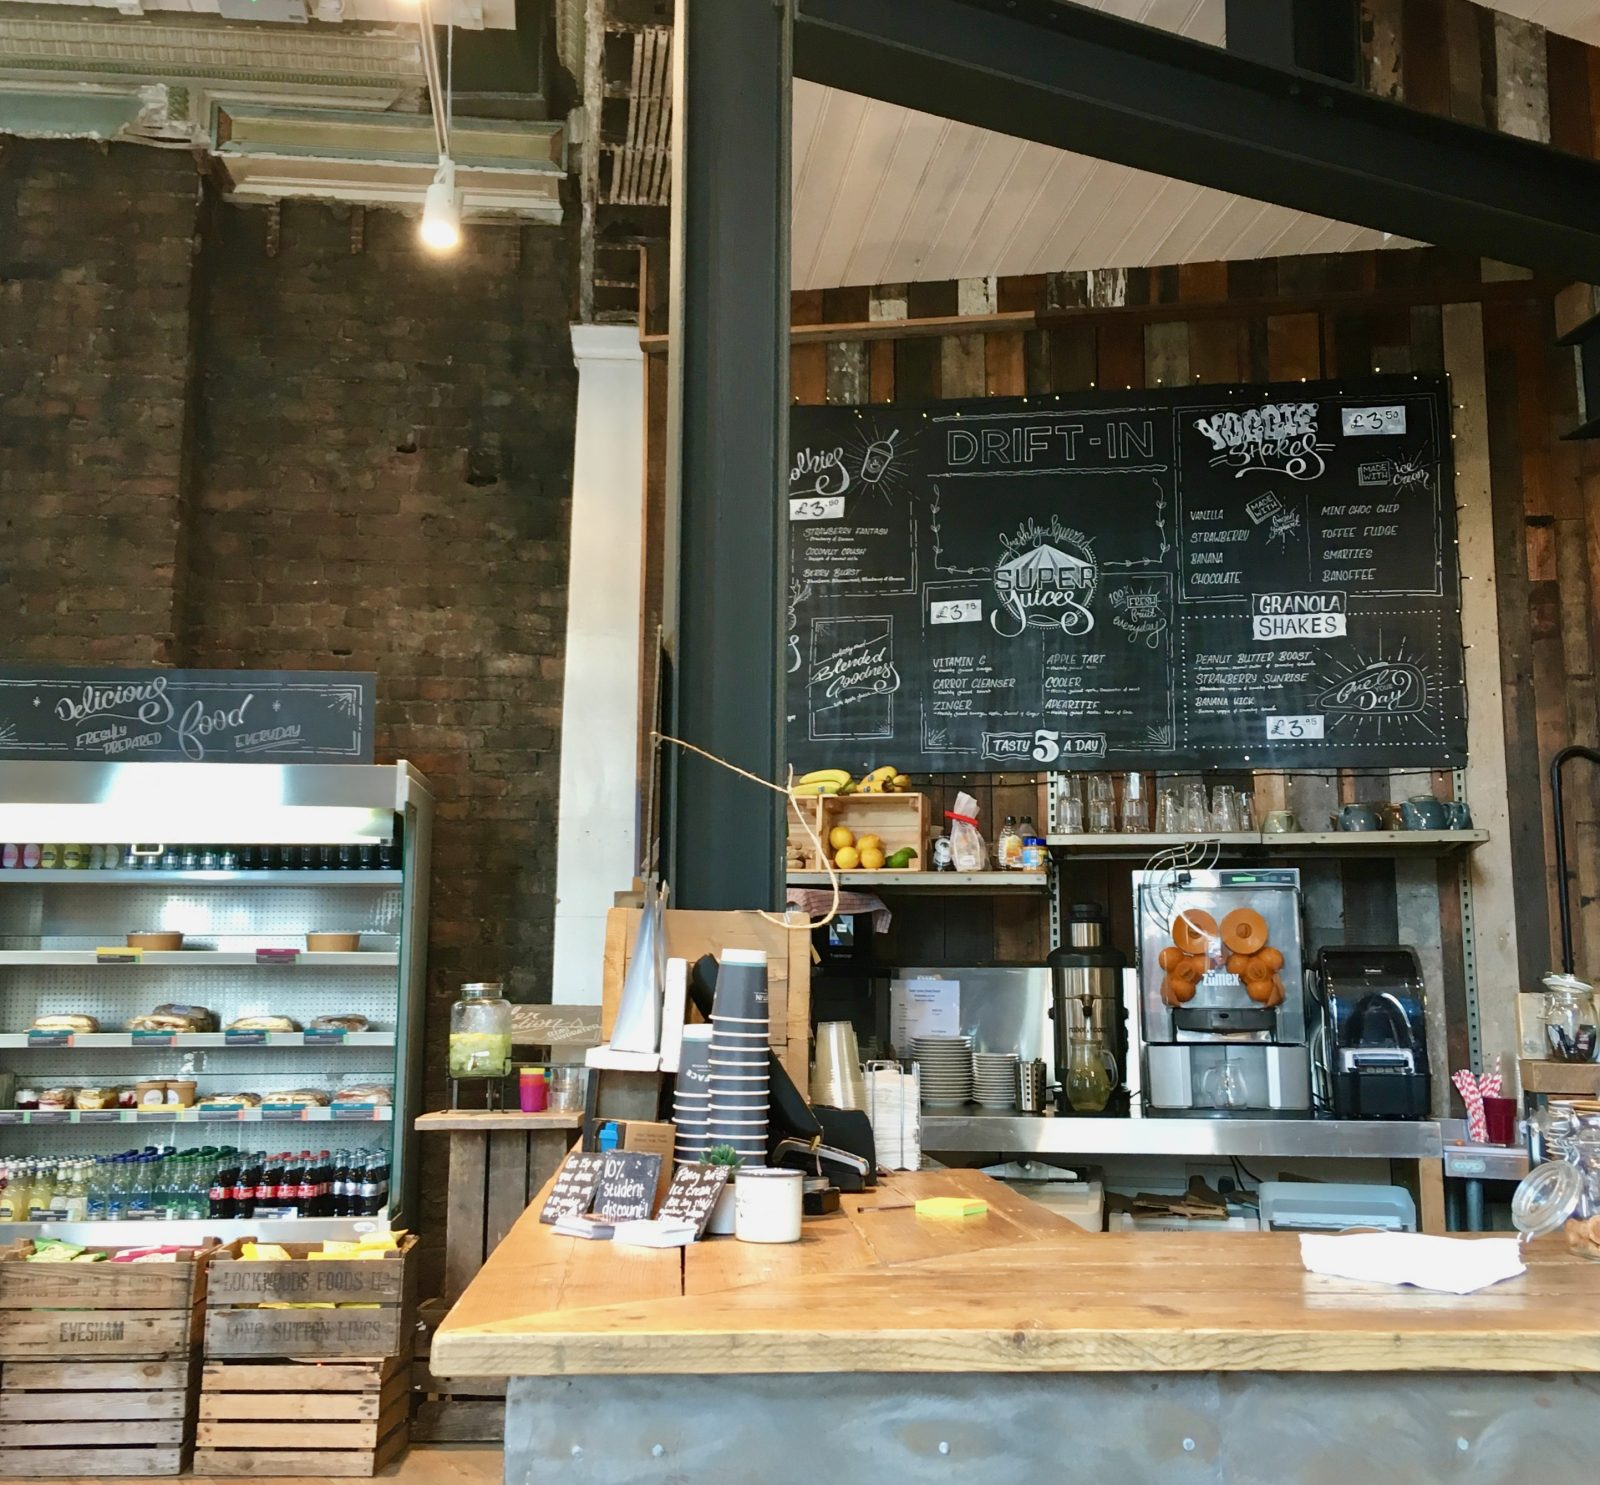 interior of drift in york, featuring counter and blackboard menu along with snacks